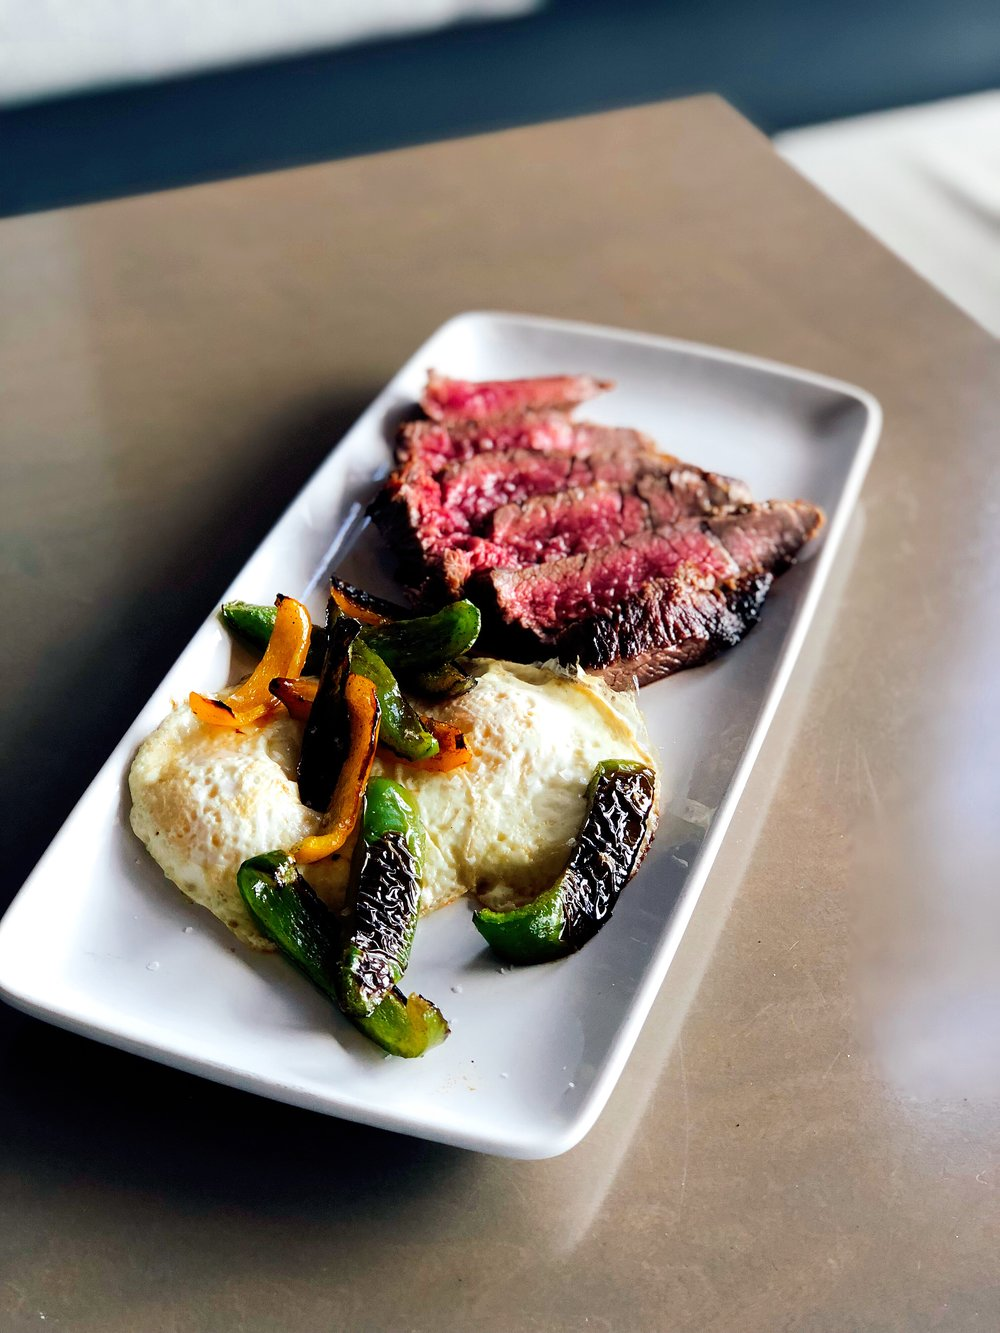 Jerry's Steak and Eggs | Porter Road Butcher Bavette Steak + 2 Eggs + Roasted Peppers